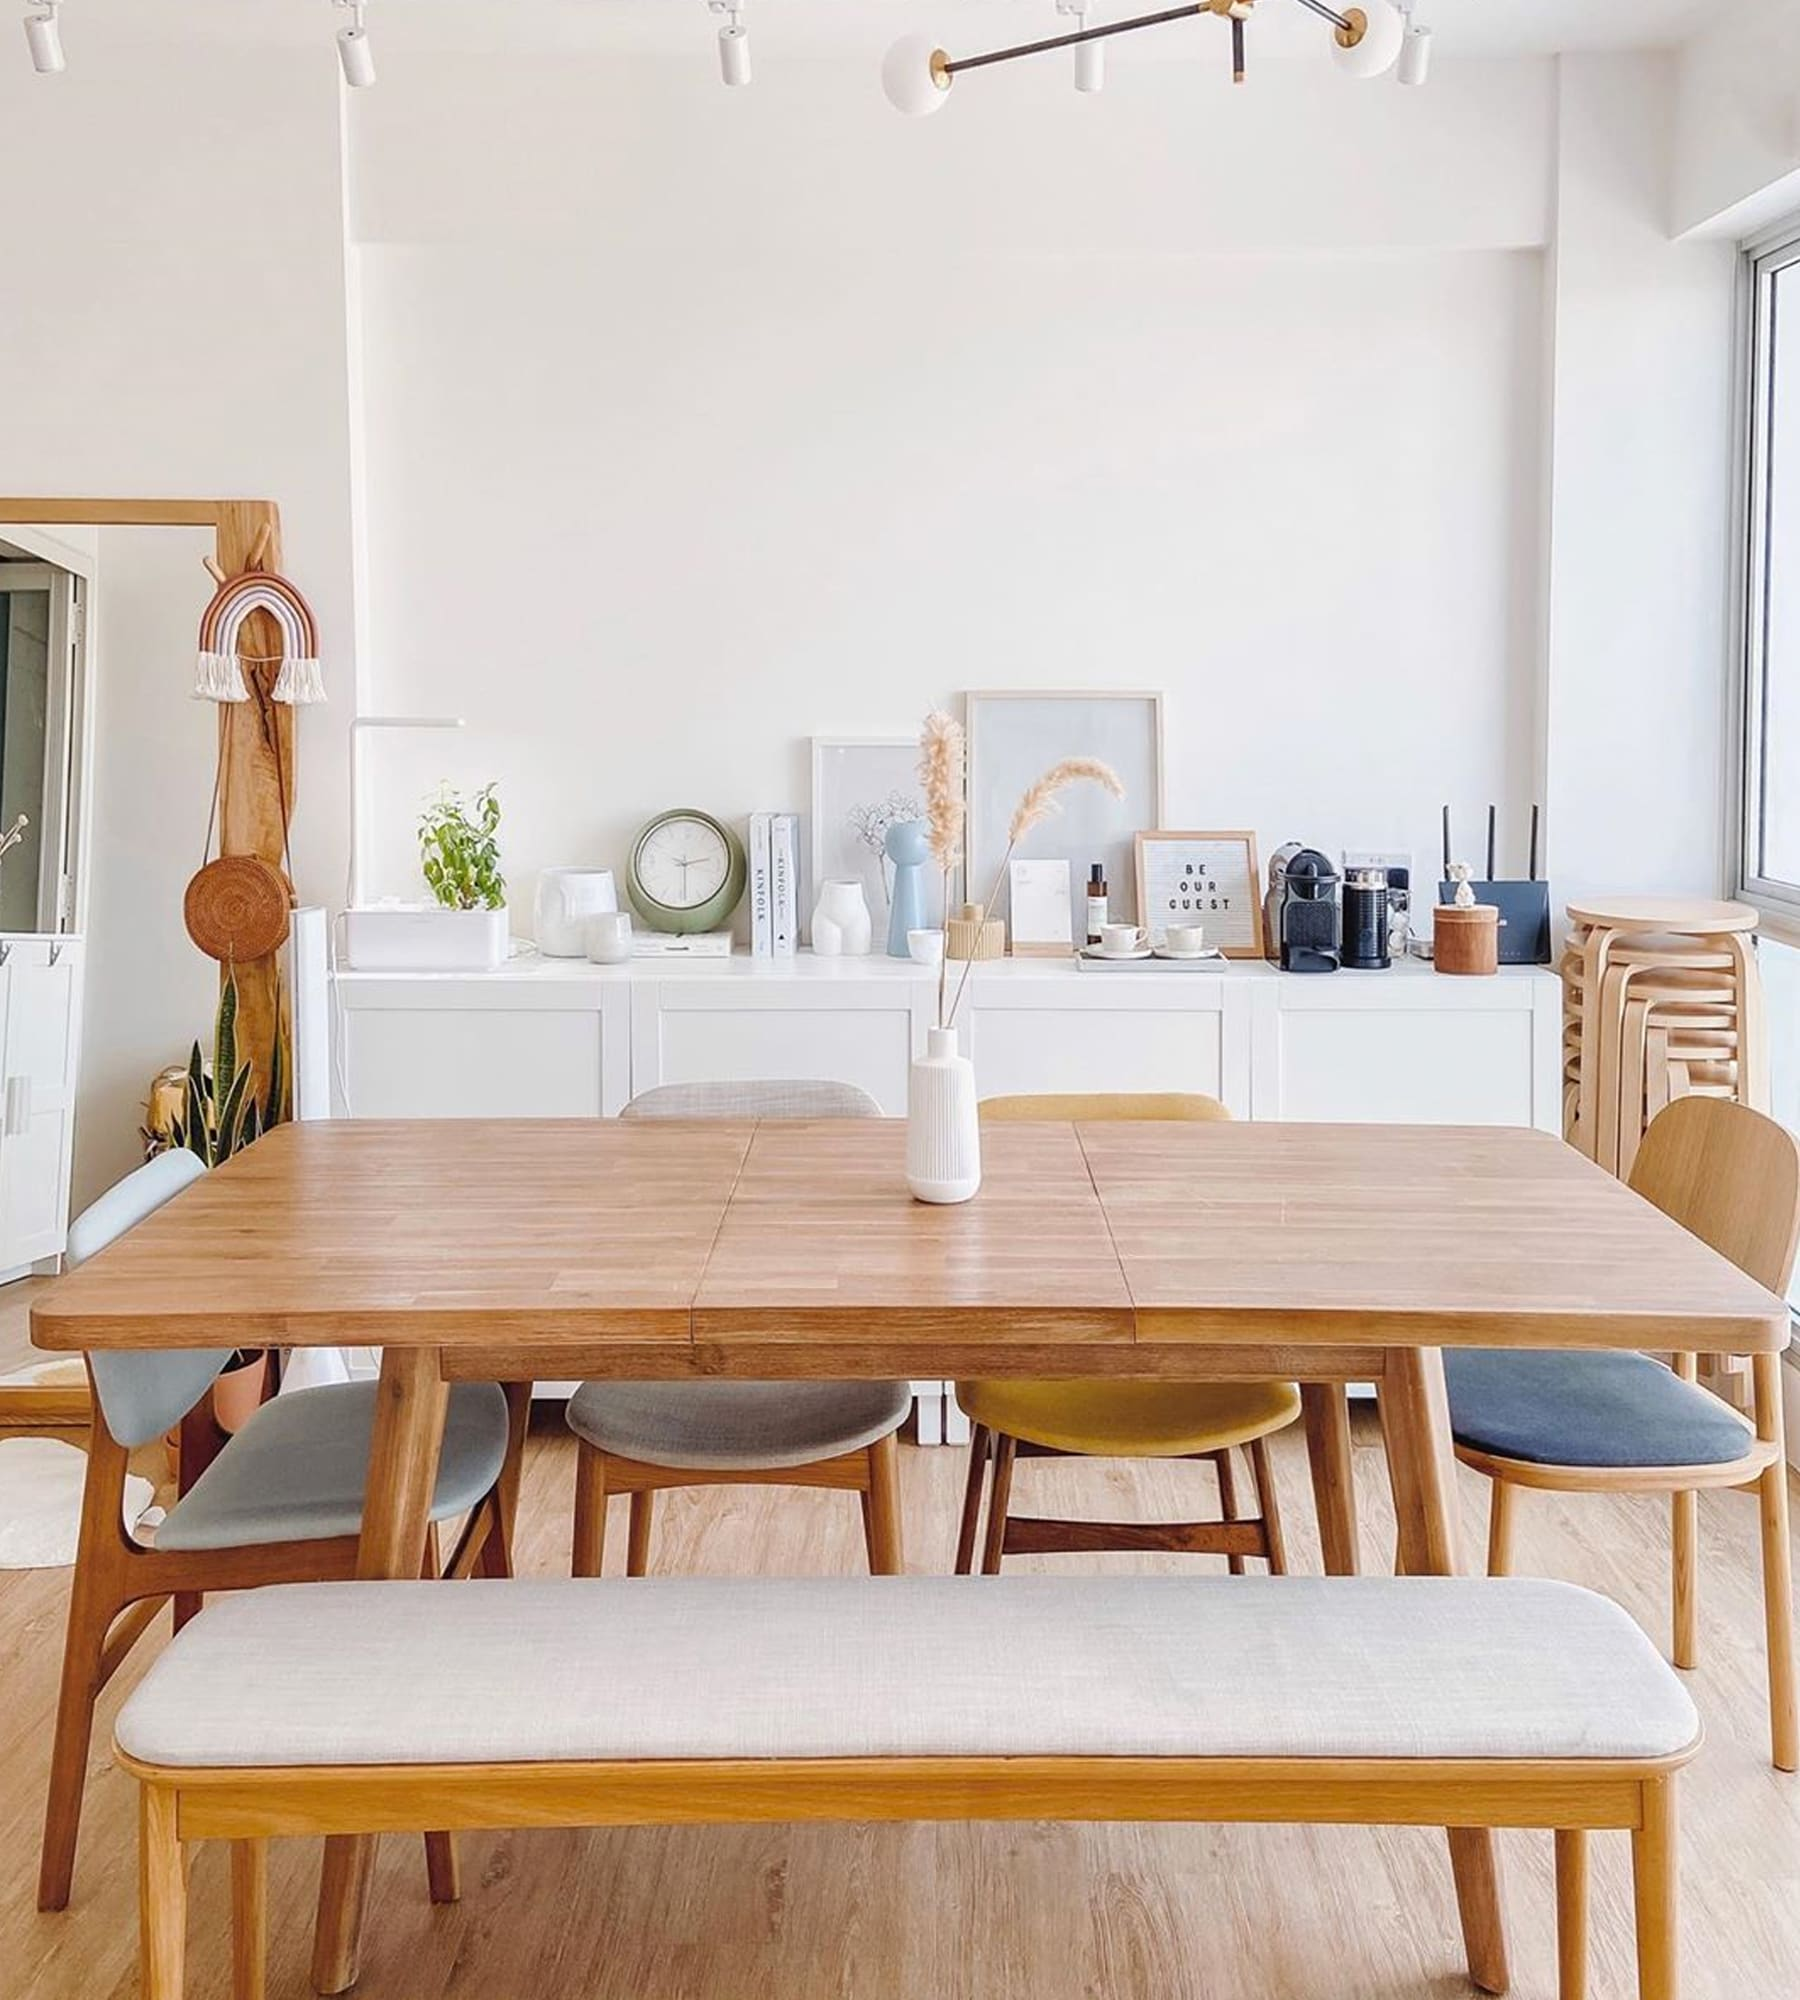 minimalist wood dining table, chairs and dining bench